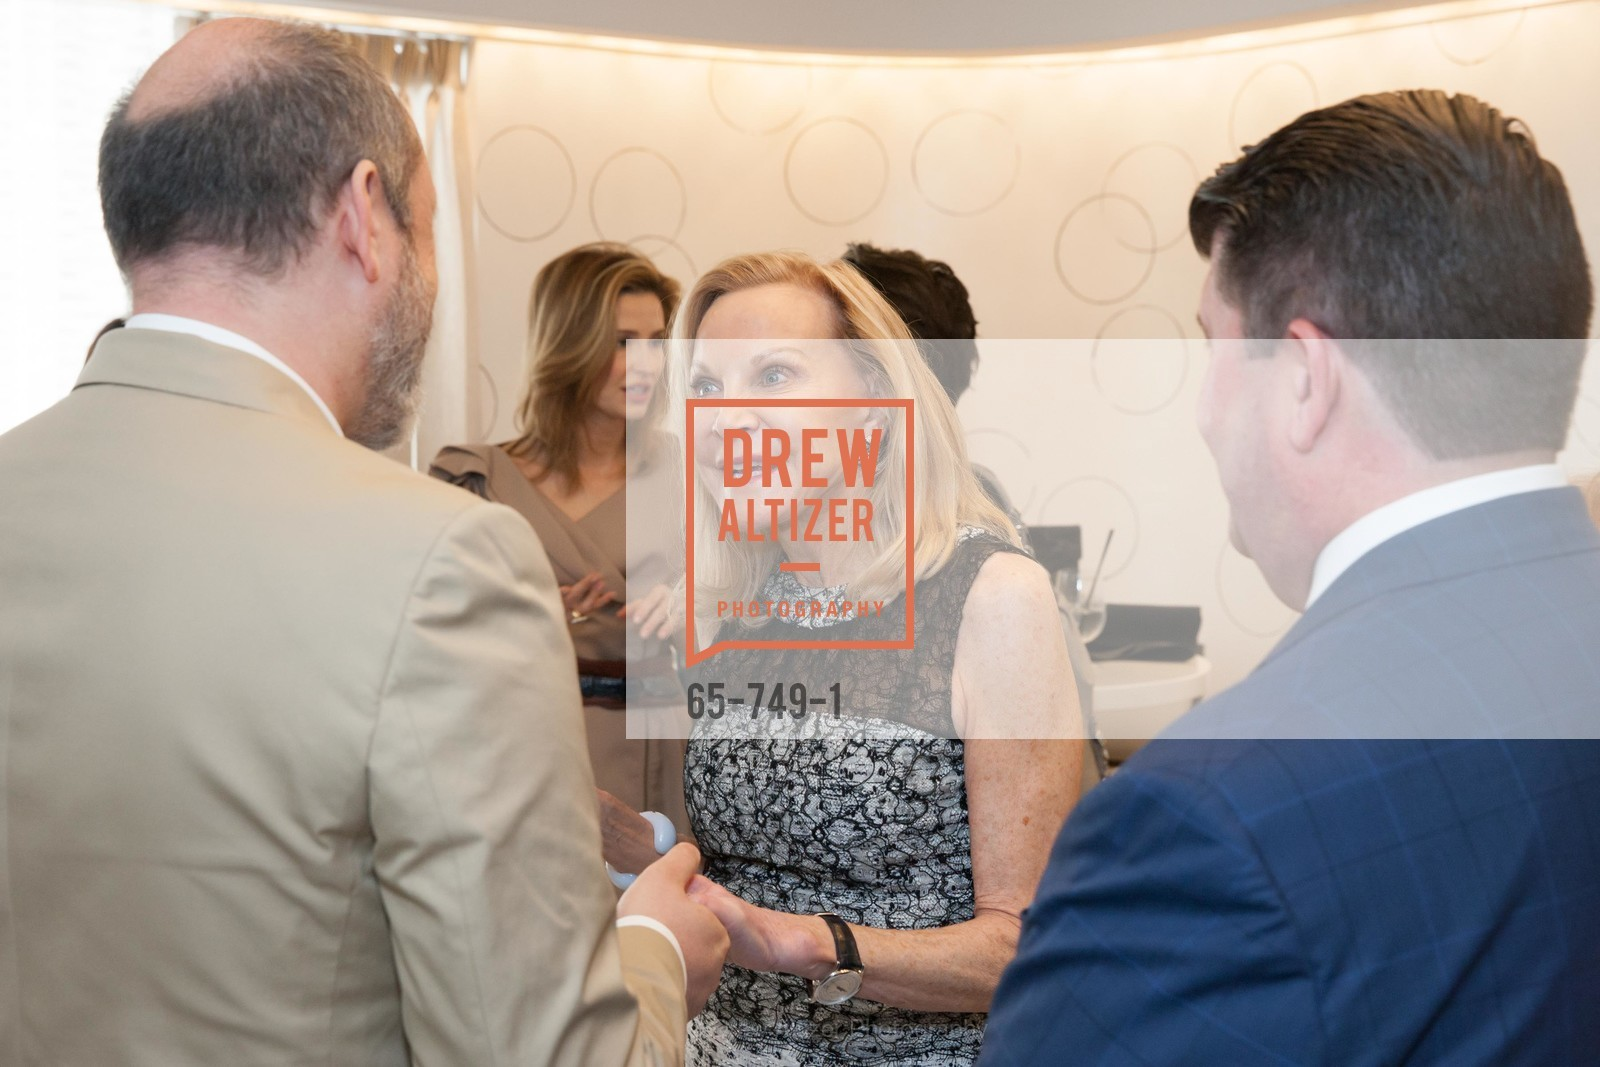 Carole McNeil, PETER COPPING Meets and Greets OSCAR DELA RENTA Clients and Associates at NEIMAN MARCUS, US, May 22nd, 2015,Drew Altizer, Drew Altizer Photography, full-service agency, private events, San Francisco photographer, photographer california